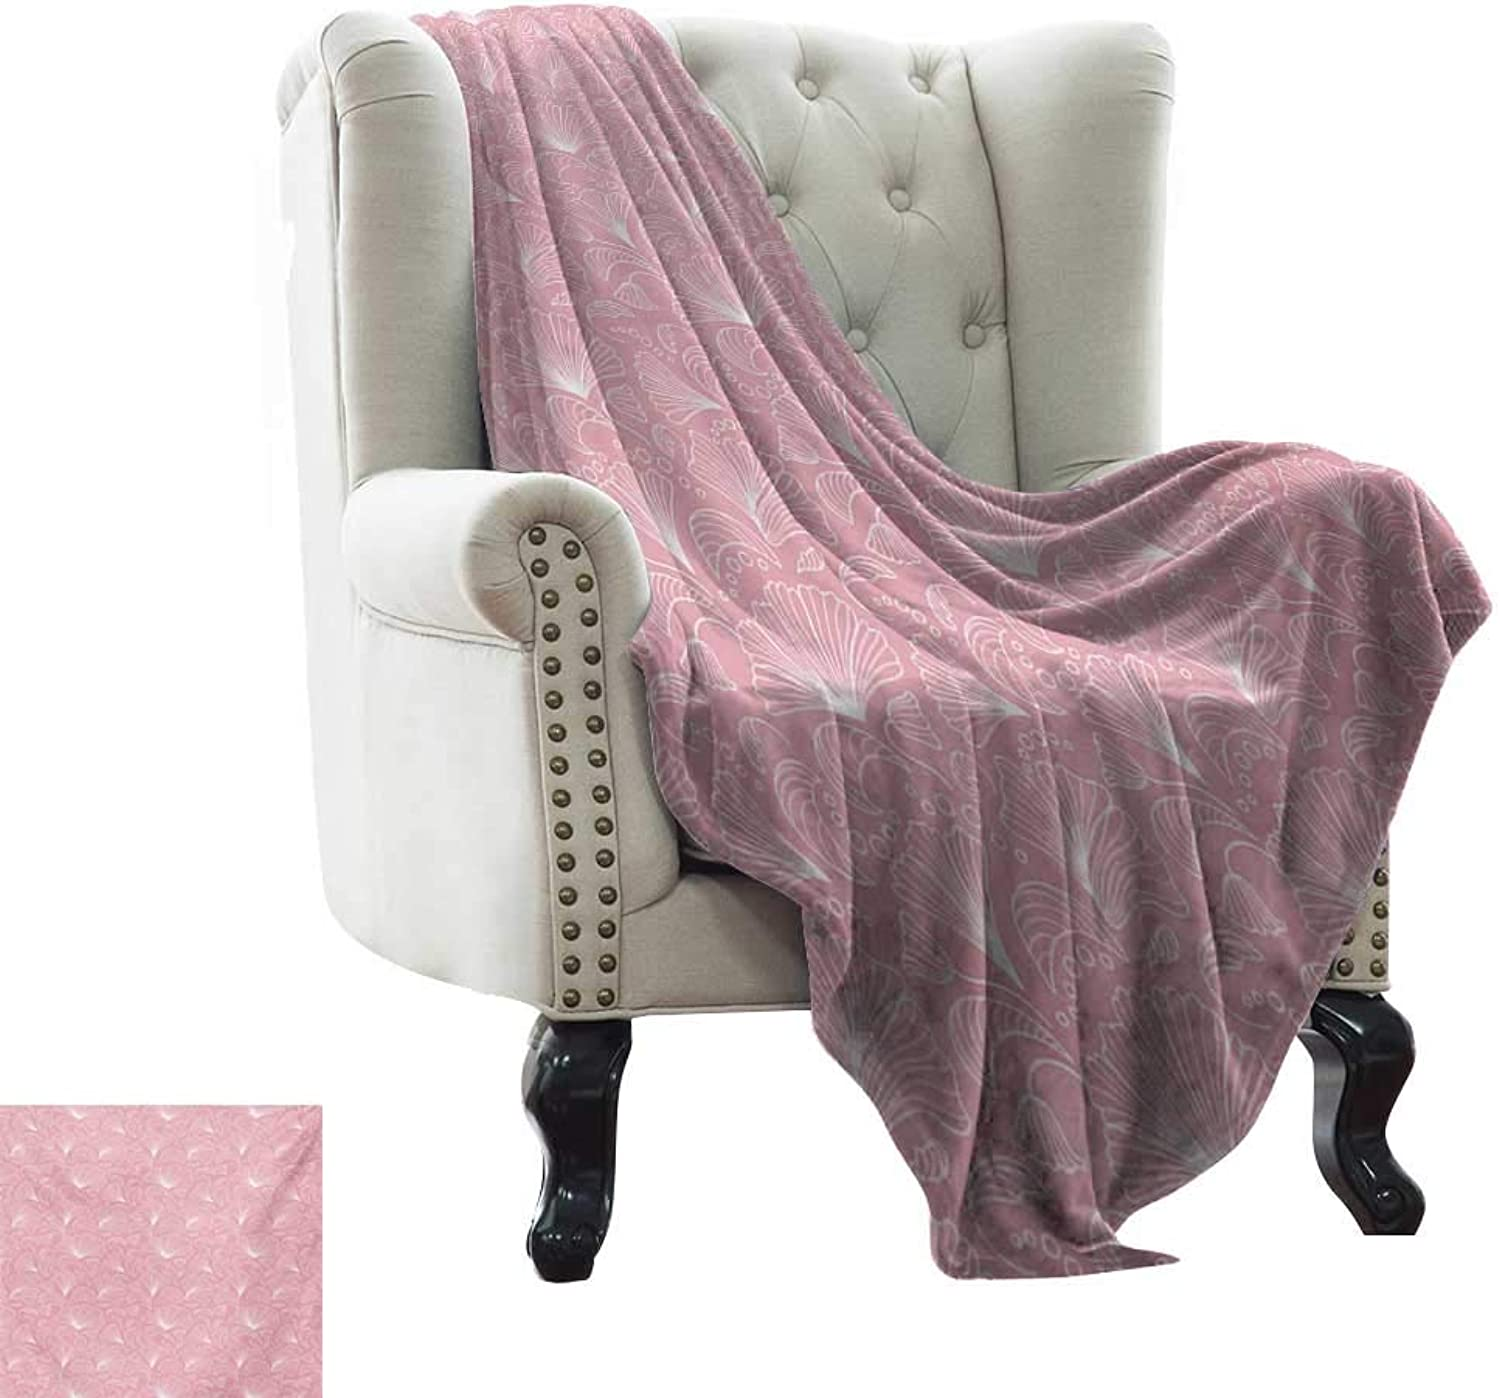 BelleAckerman Baby Blanket Pale Pink,Ornamental Floral Pattern with Swirled Lines Flourishing Petals Feminine Girls Design,White Microfiber All Season Blanket for Bed or Couch Multicolor 35 x60